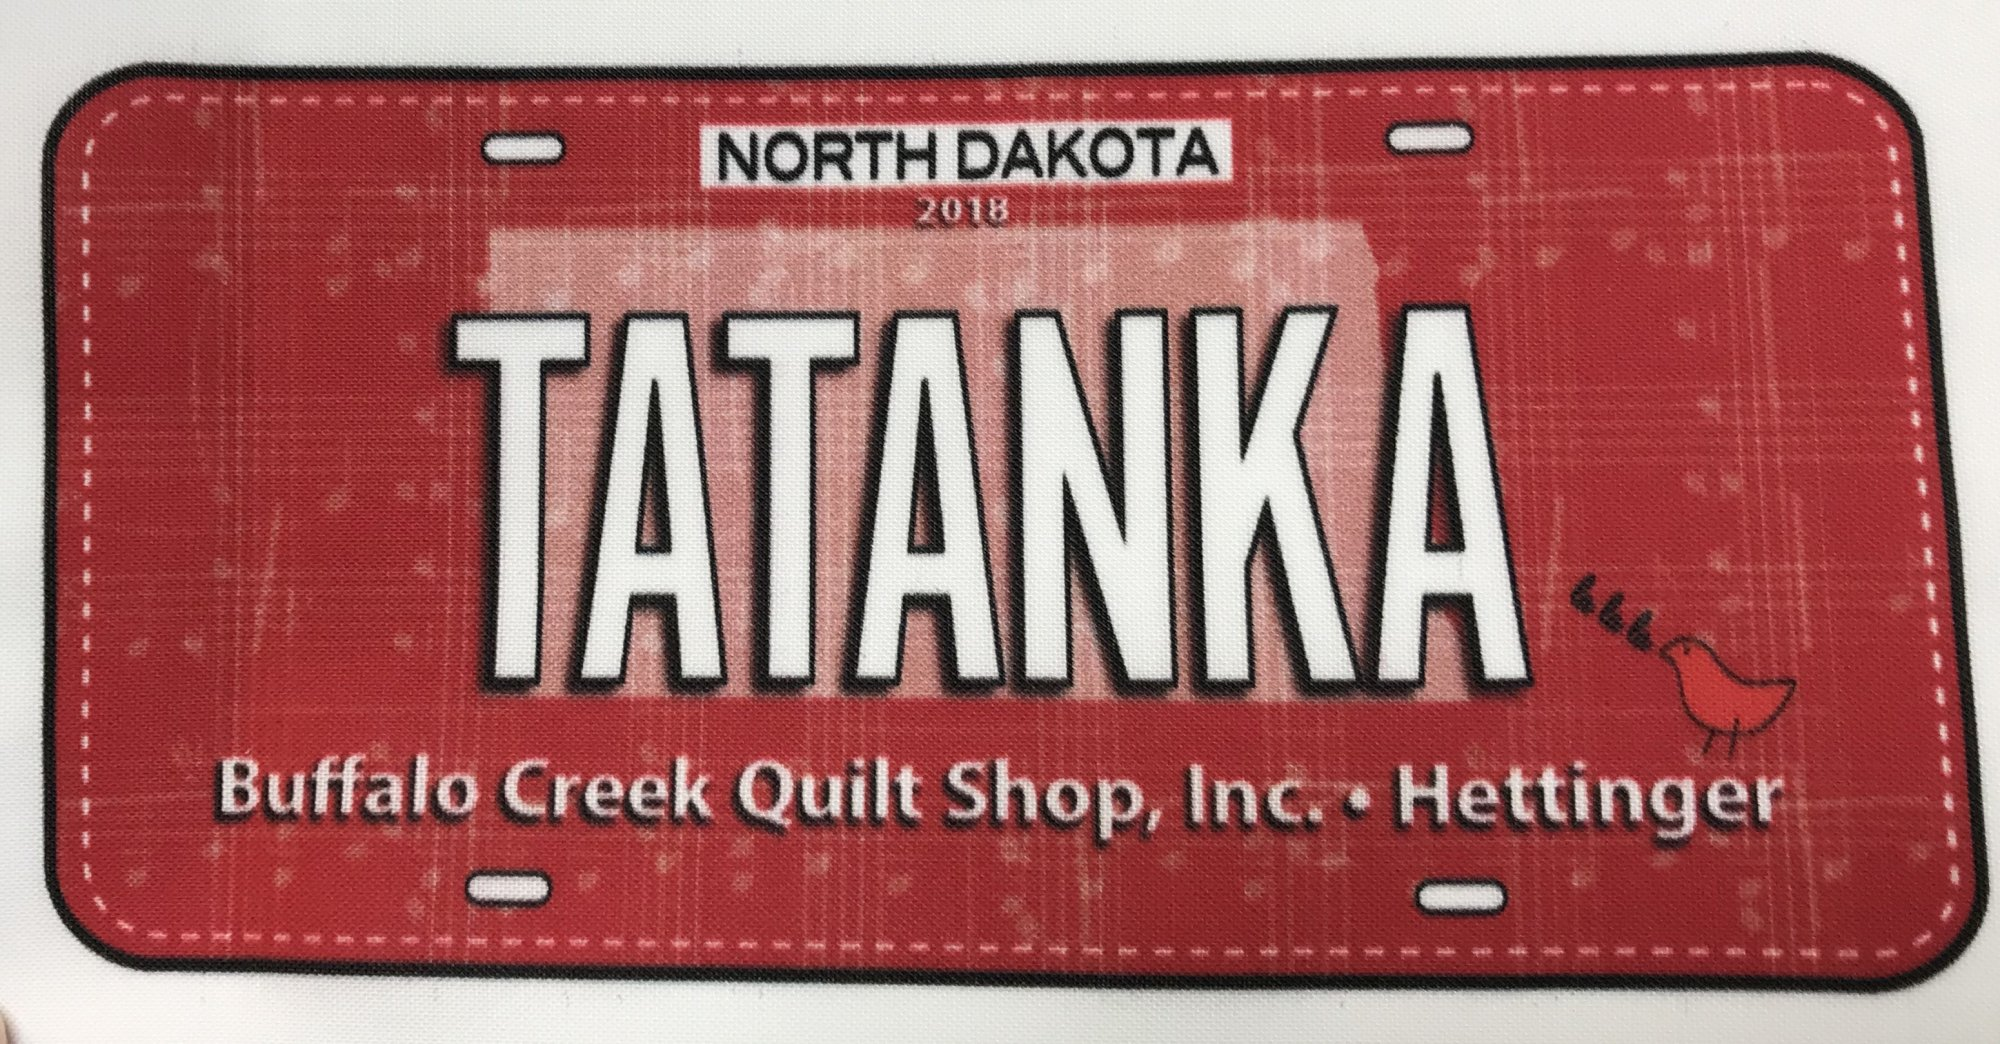 Mini Tatanka Row by Row License Plate 2018